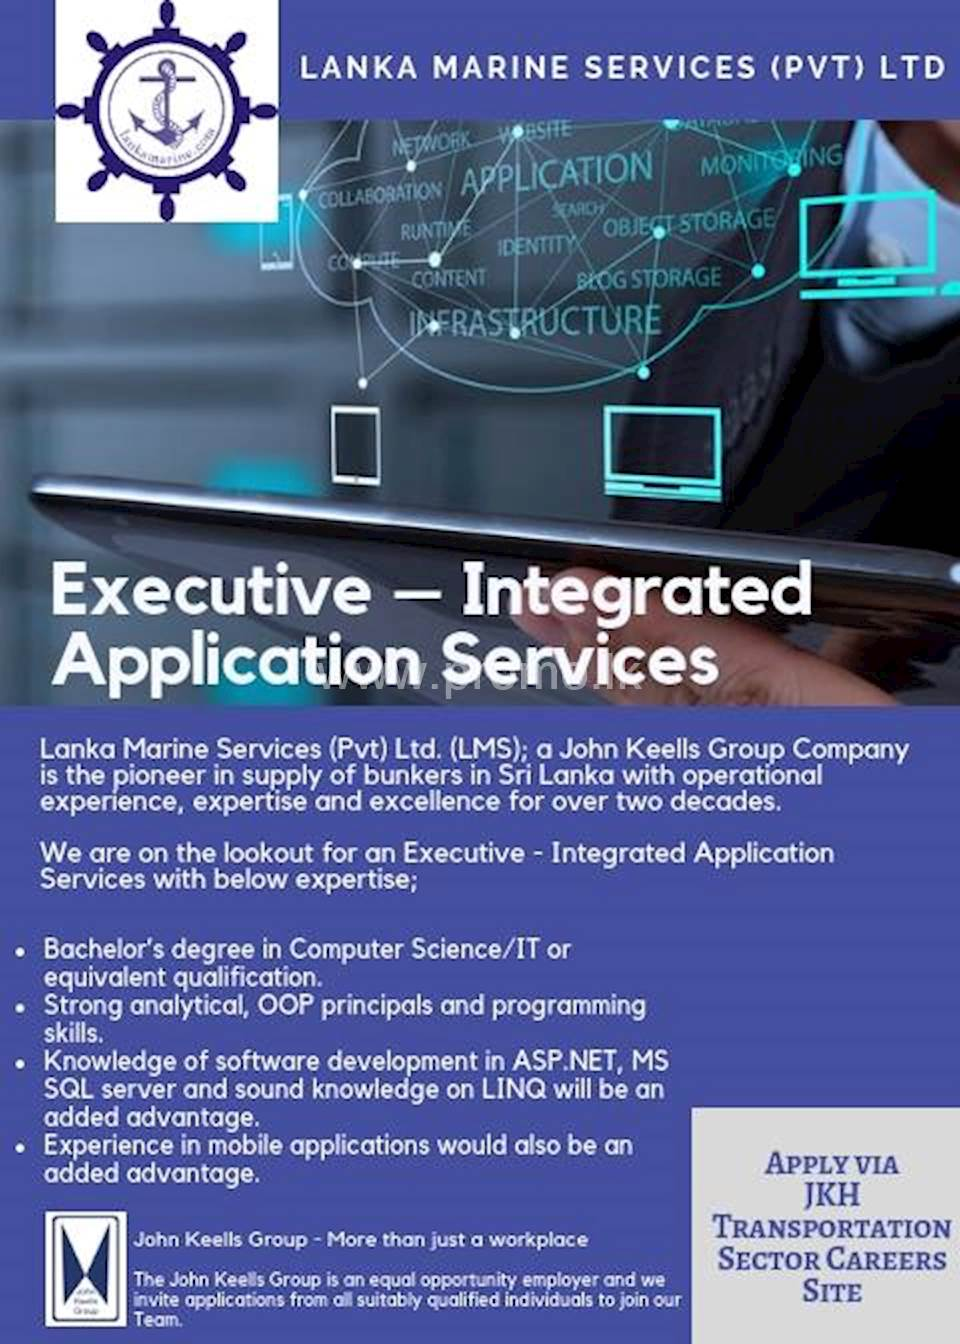 Executive - Integrated Application Services